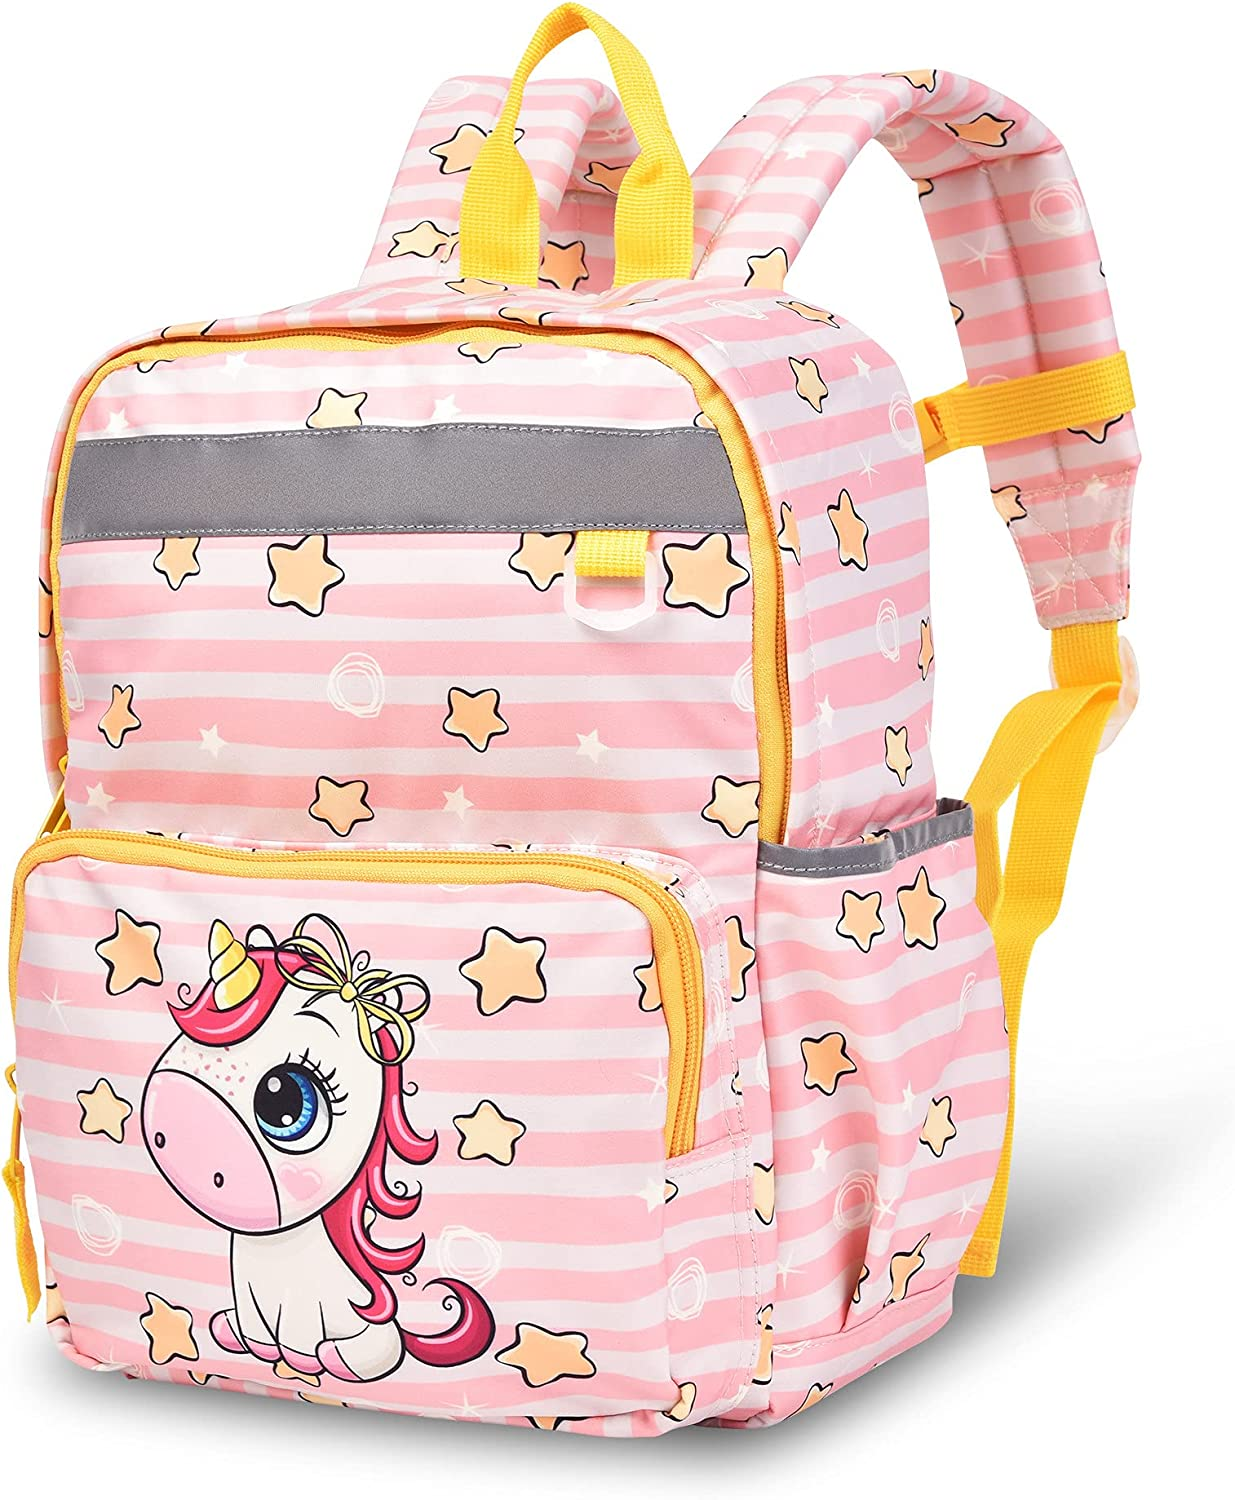 Toddler Backpack Small Kids - Girl Translated for Max 76% OFF